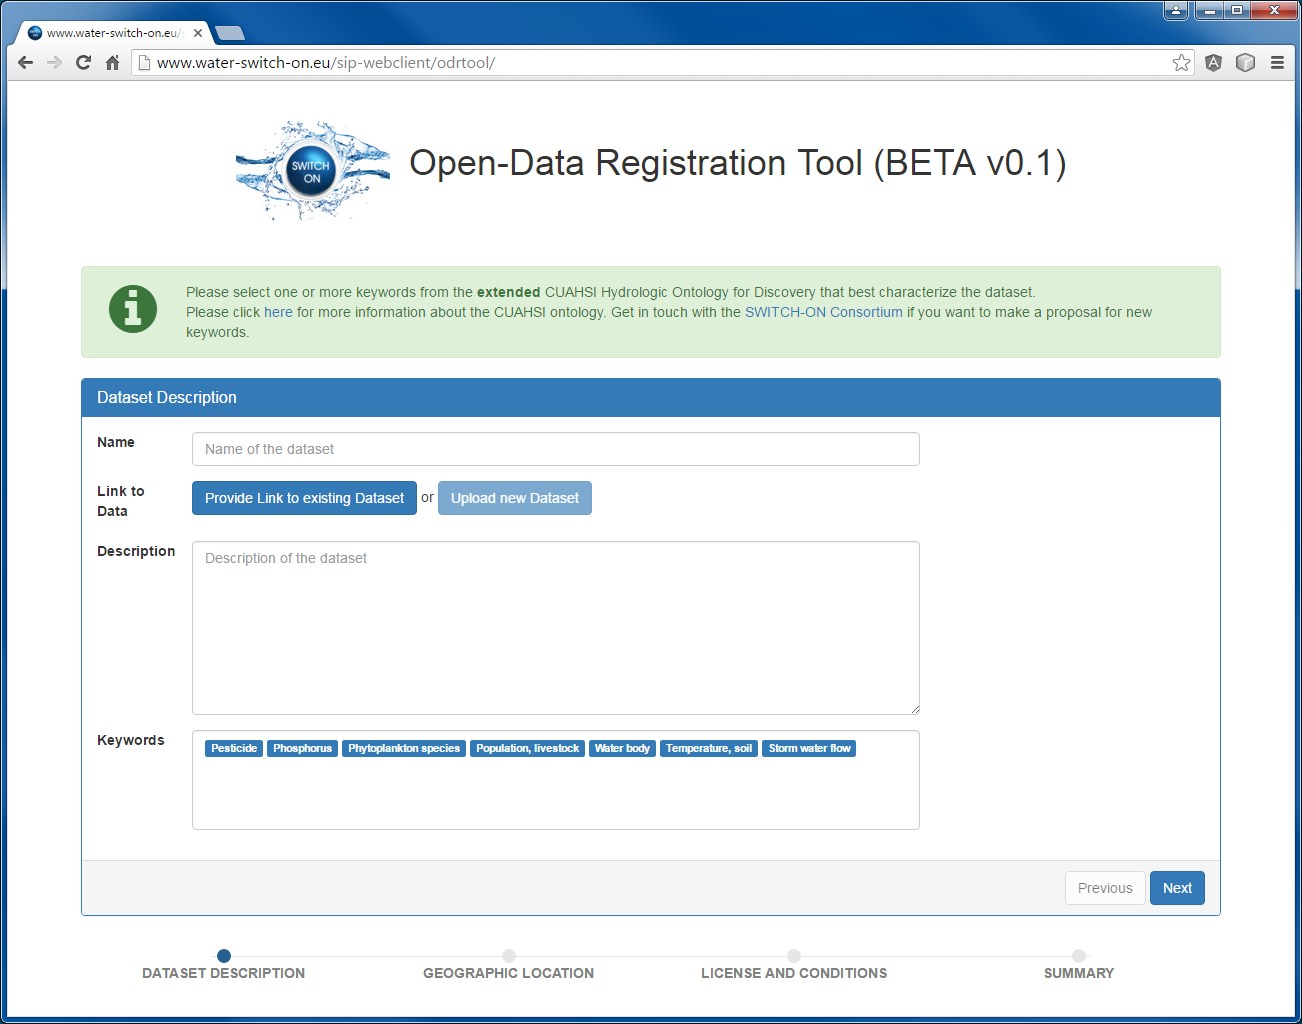 Open Data Registration Tool